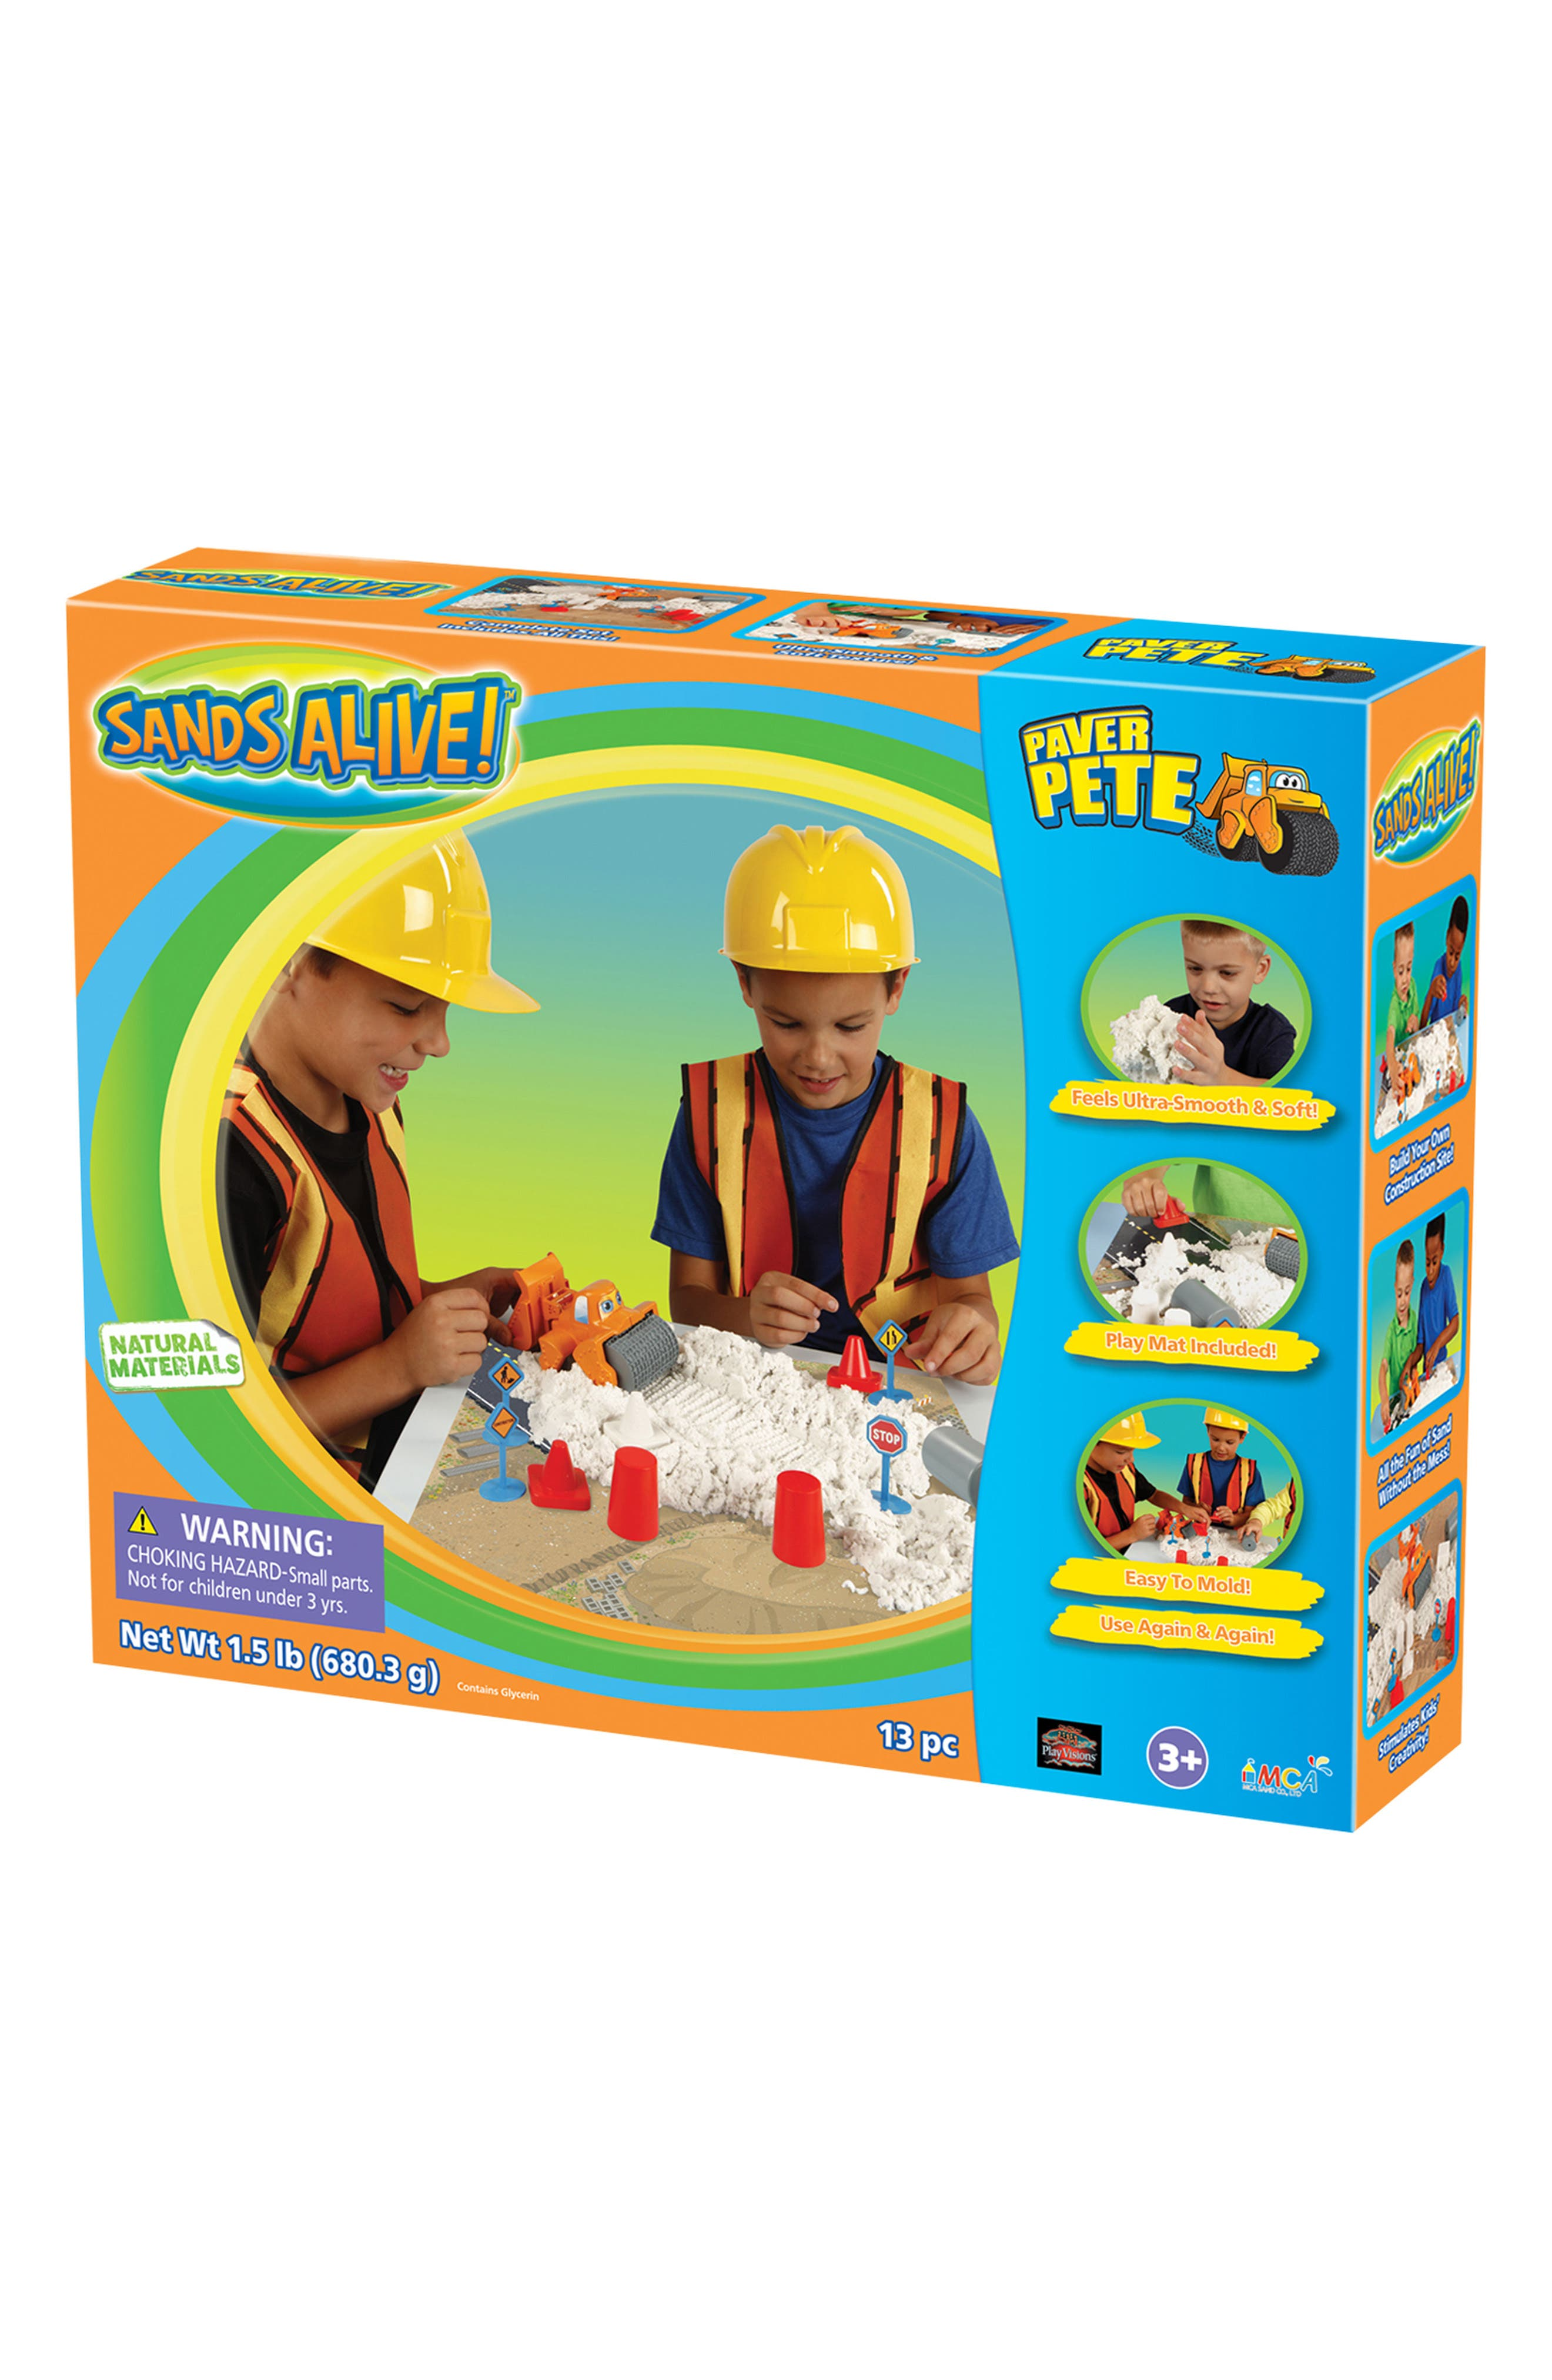 Play Visions Toys Sands Alive! Paver Pete Play Set